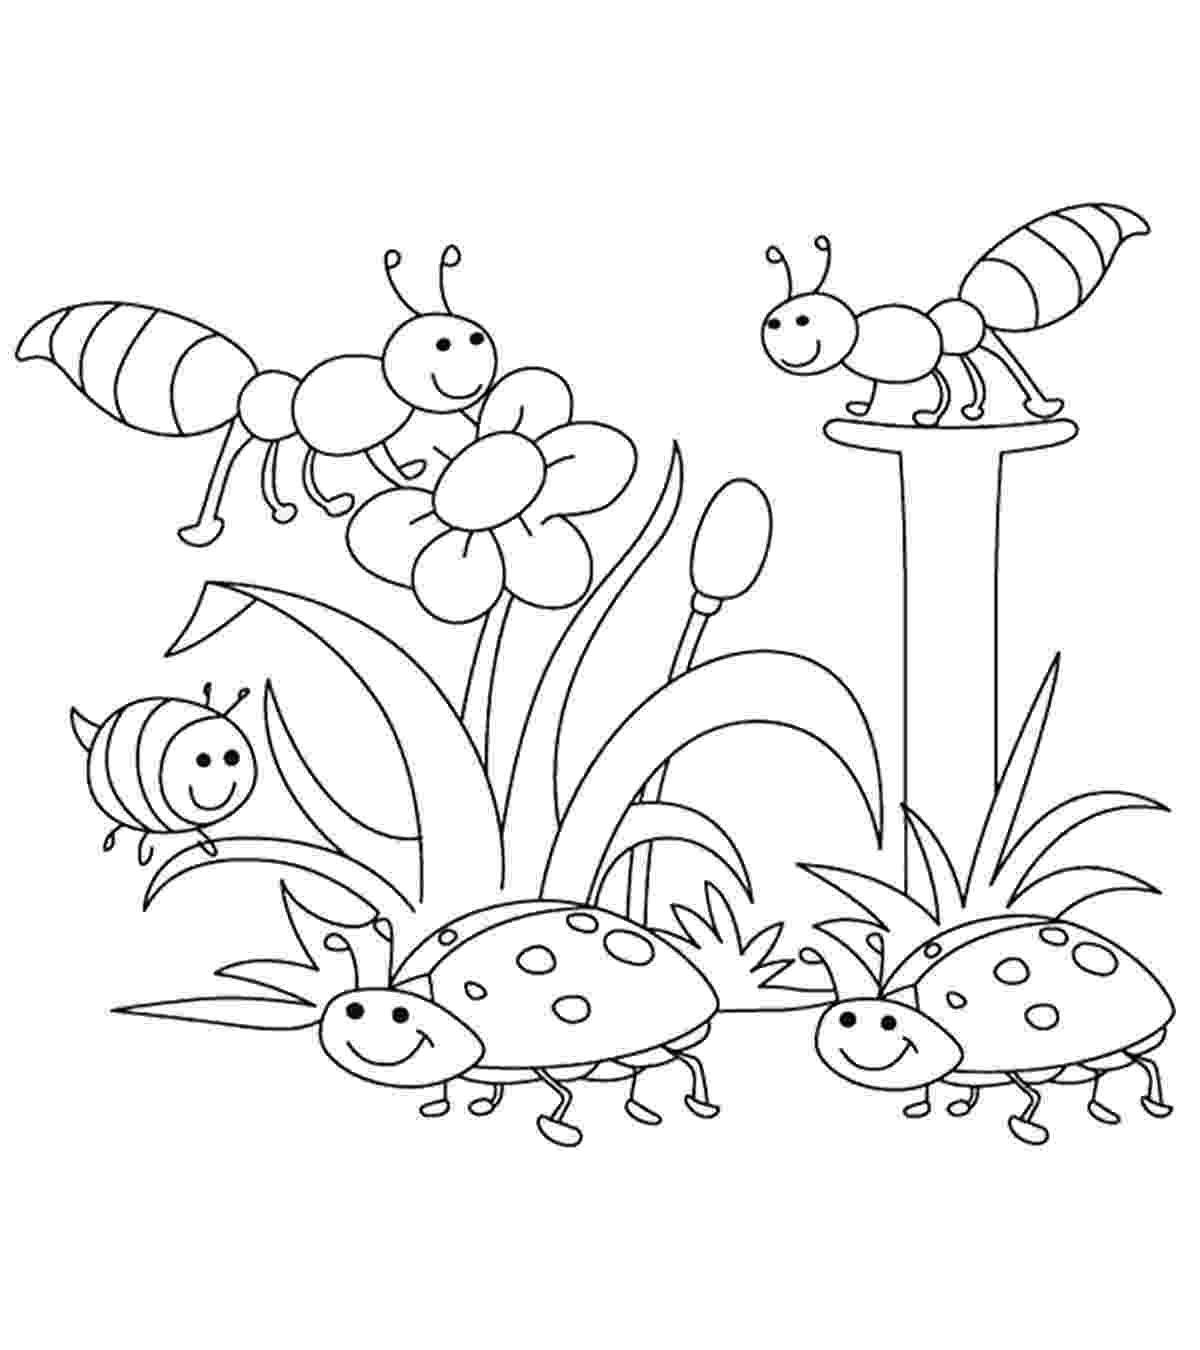 spring coloring pages soccer wallpaper spring coloring pages 2011 pages coloring spring